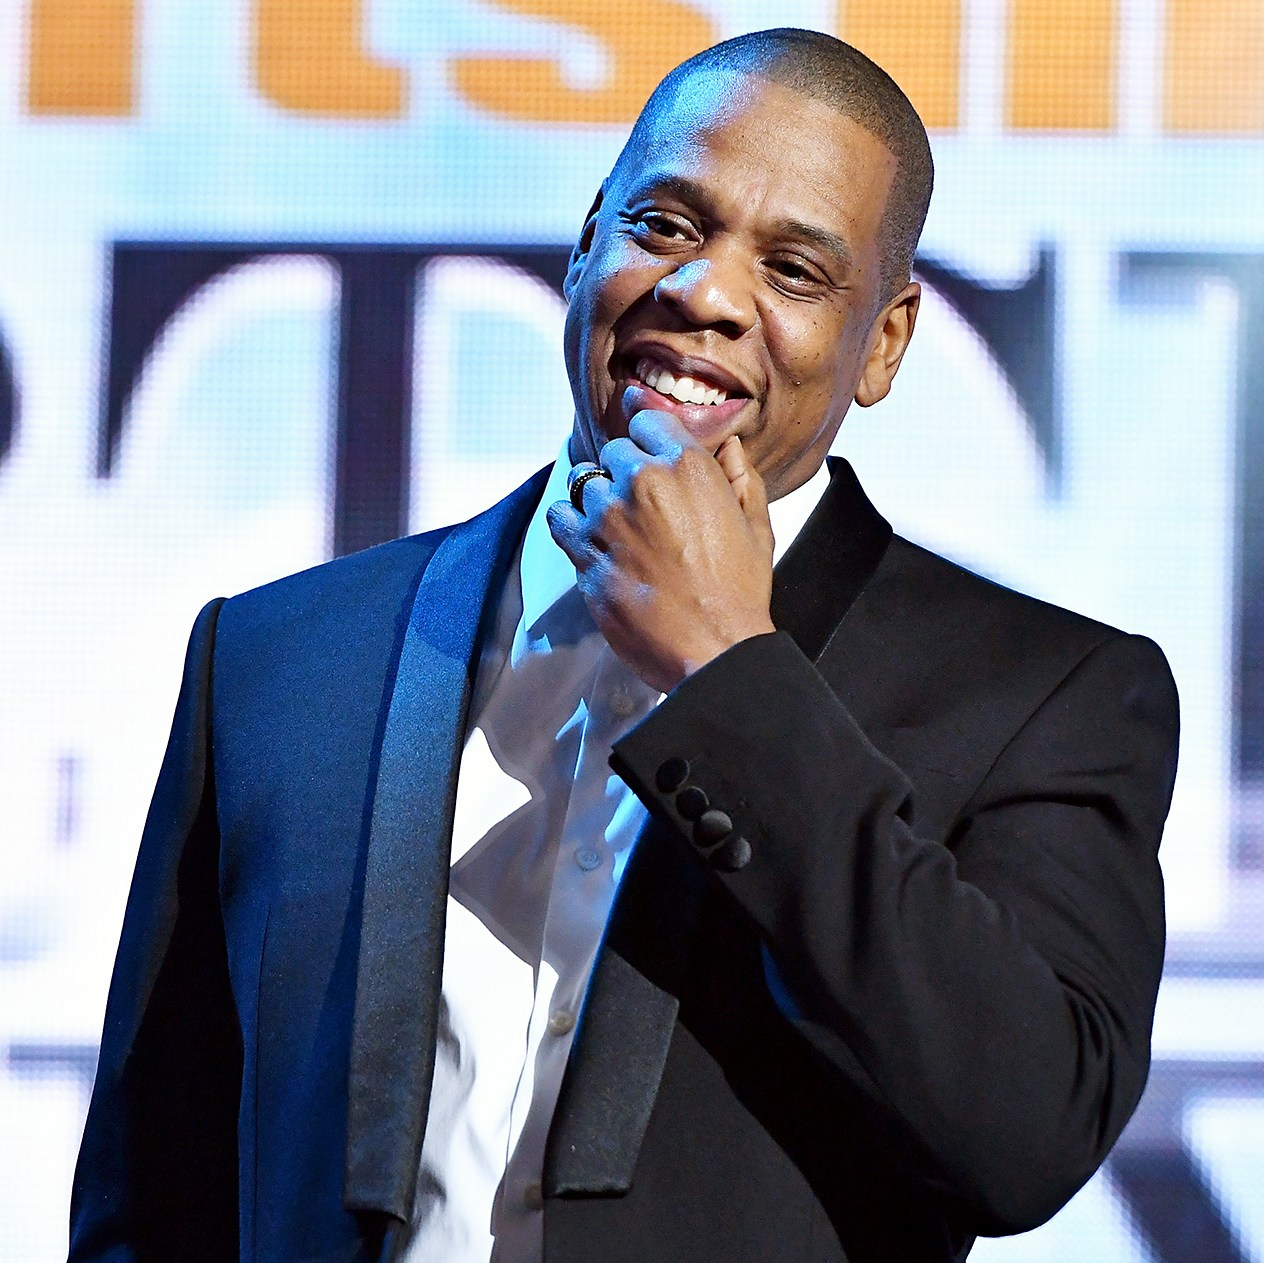 Jay-Z Drops 110K on Bar Bill